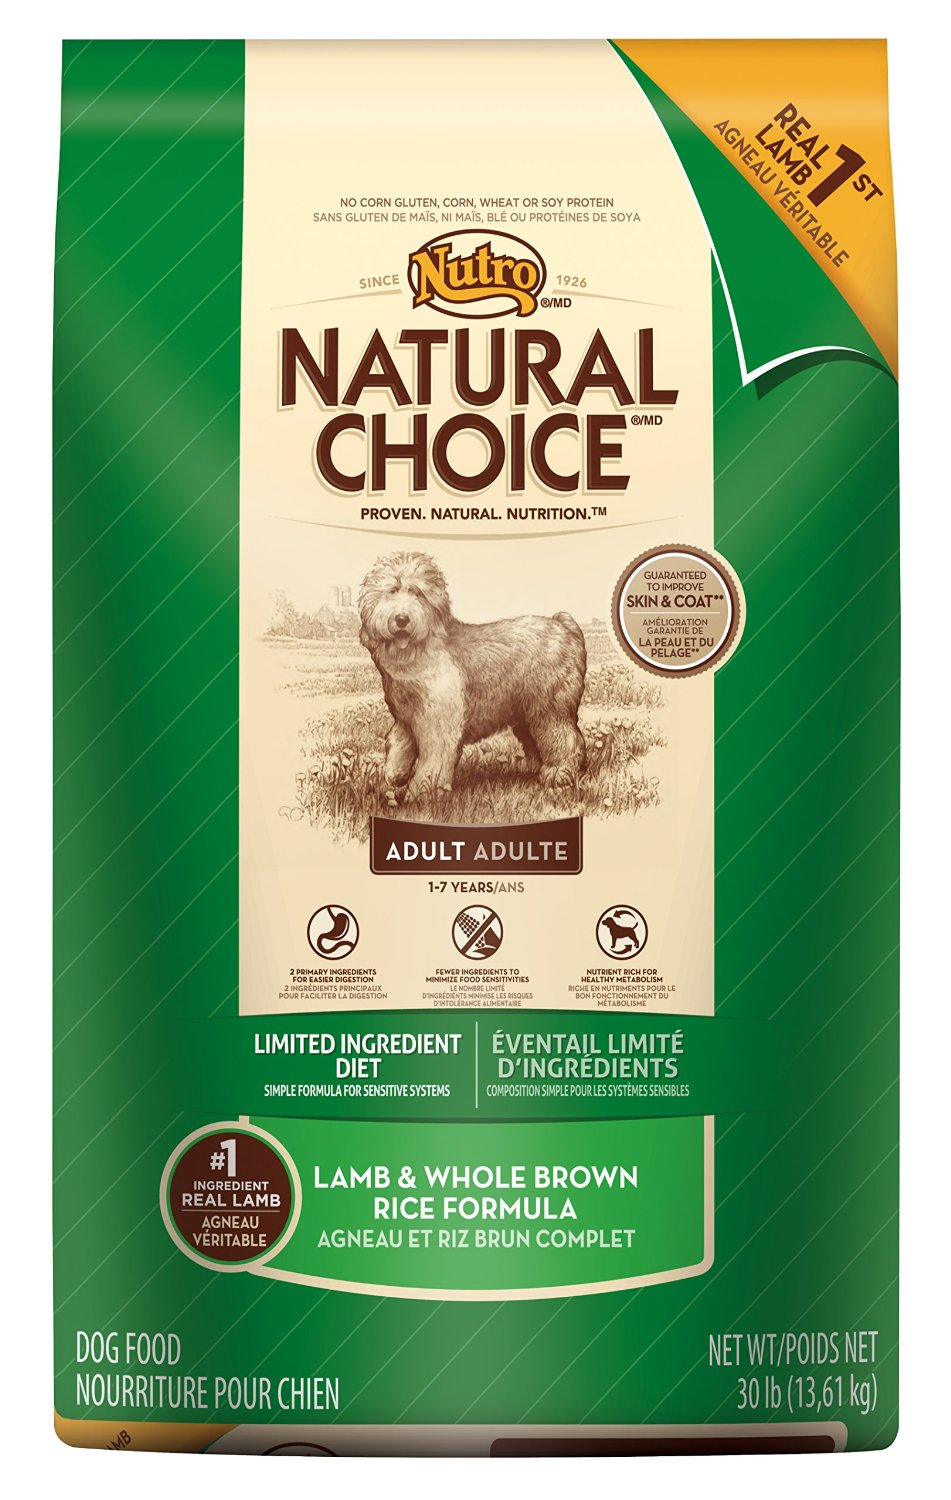 Natural Choice Toy Breed Dog Food